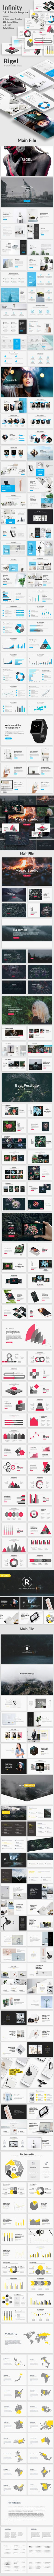 3 in 1 Infinity Bundle Powerpoint Template — Powerpoint PPT #pptx #modern • Download ➝ https://graphicriver.net/item/3-in-1-infinity-bundle-powerpoint-template/19950714?ref=pxcr